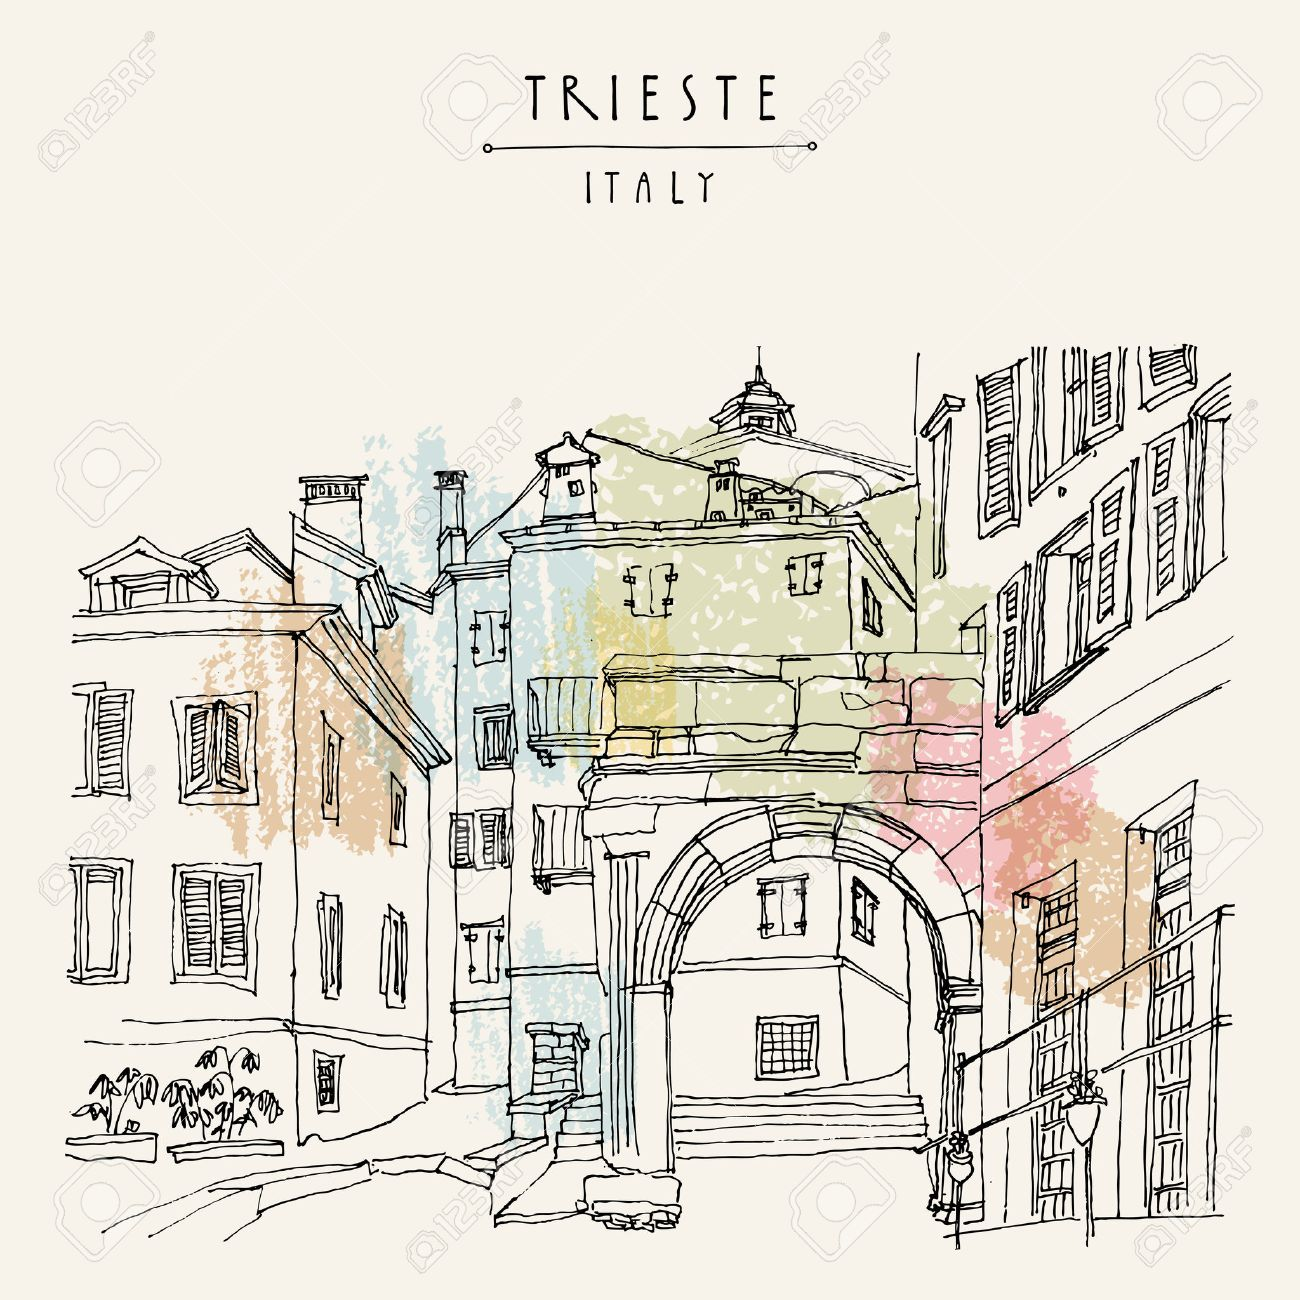 Remains of a Roman arch in Trieste's Old City, Trieste, Friuli-Venezia Giulia, Italy. Mediterranean houses. Artistic hand drawn travel sketch. Book illustration, postcard, poster in vector - 63467904